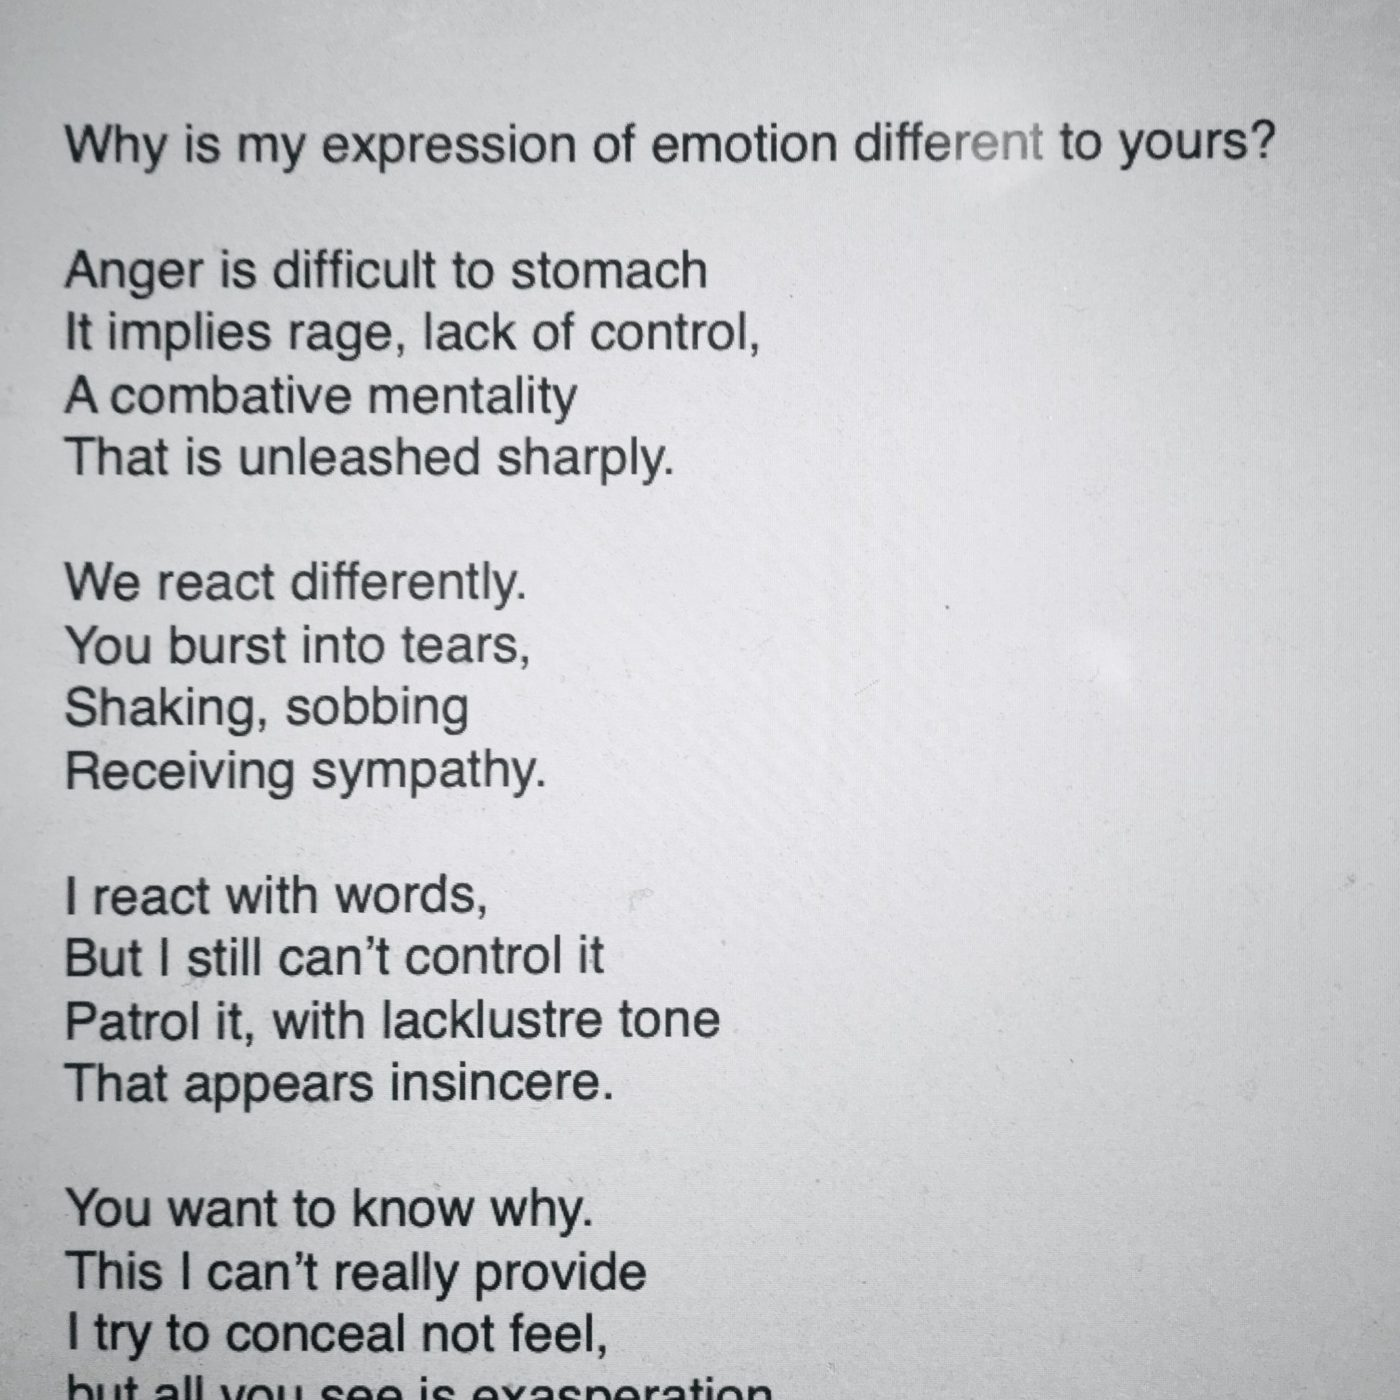 Is my expression of emotion different to yours?